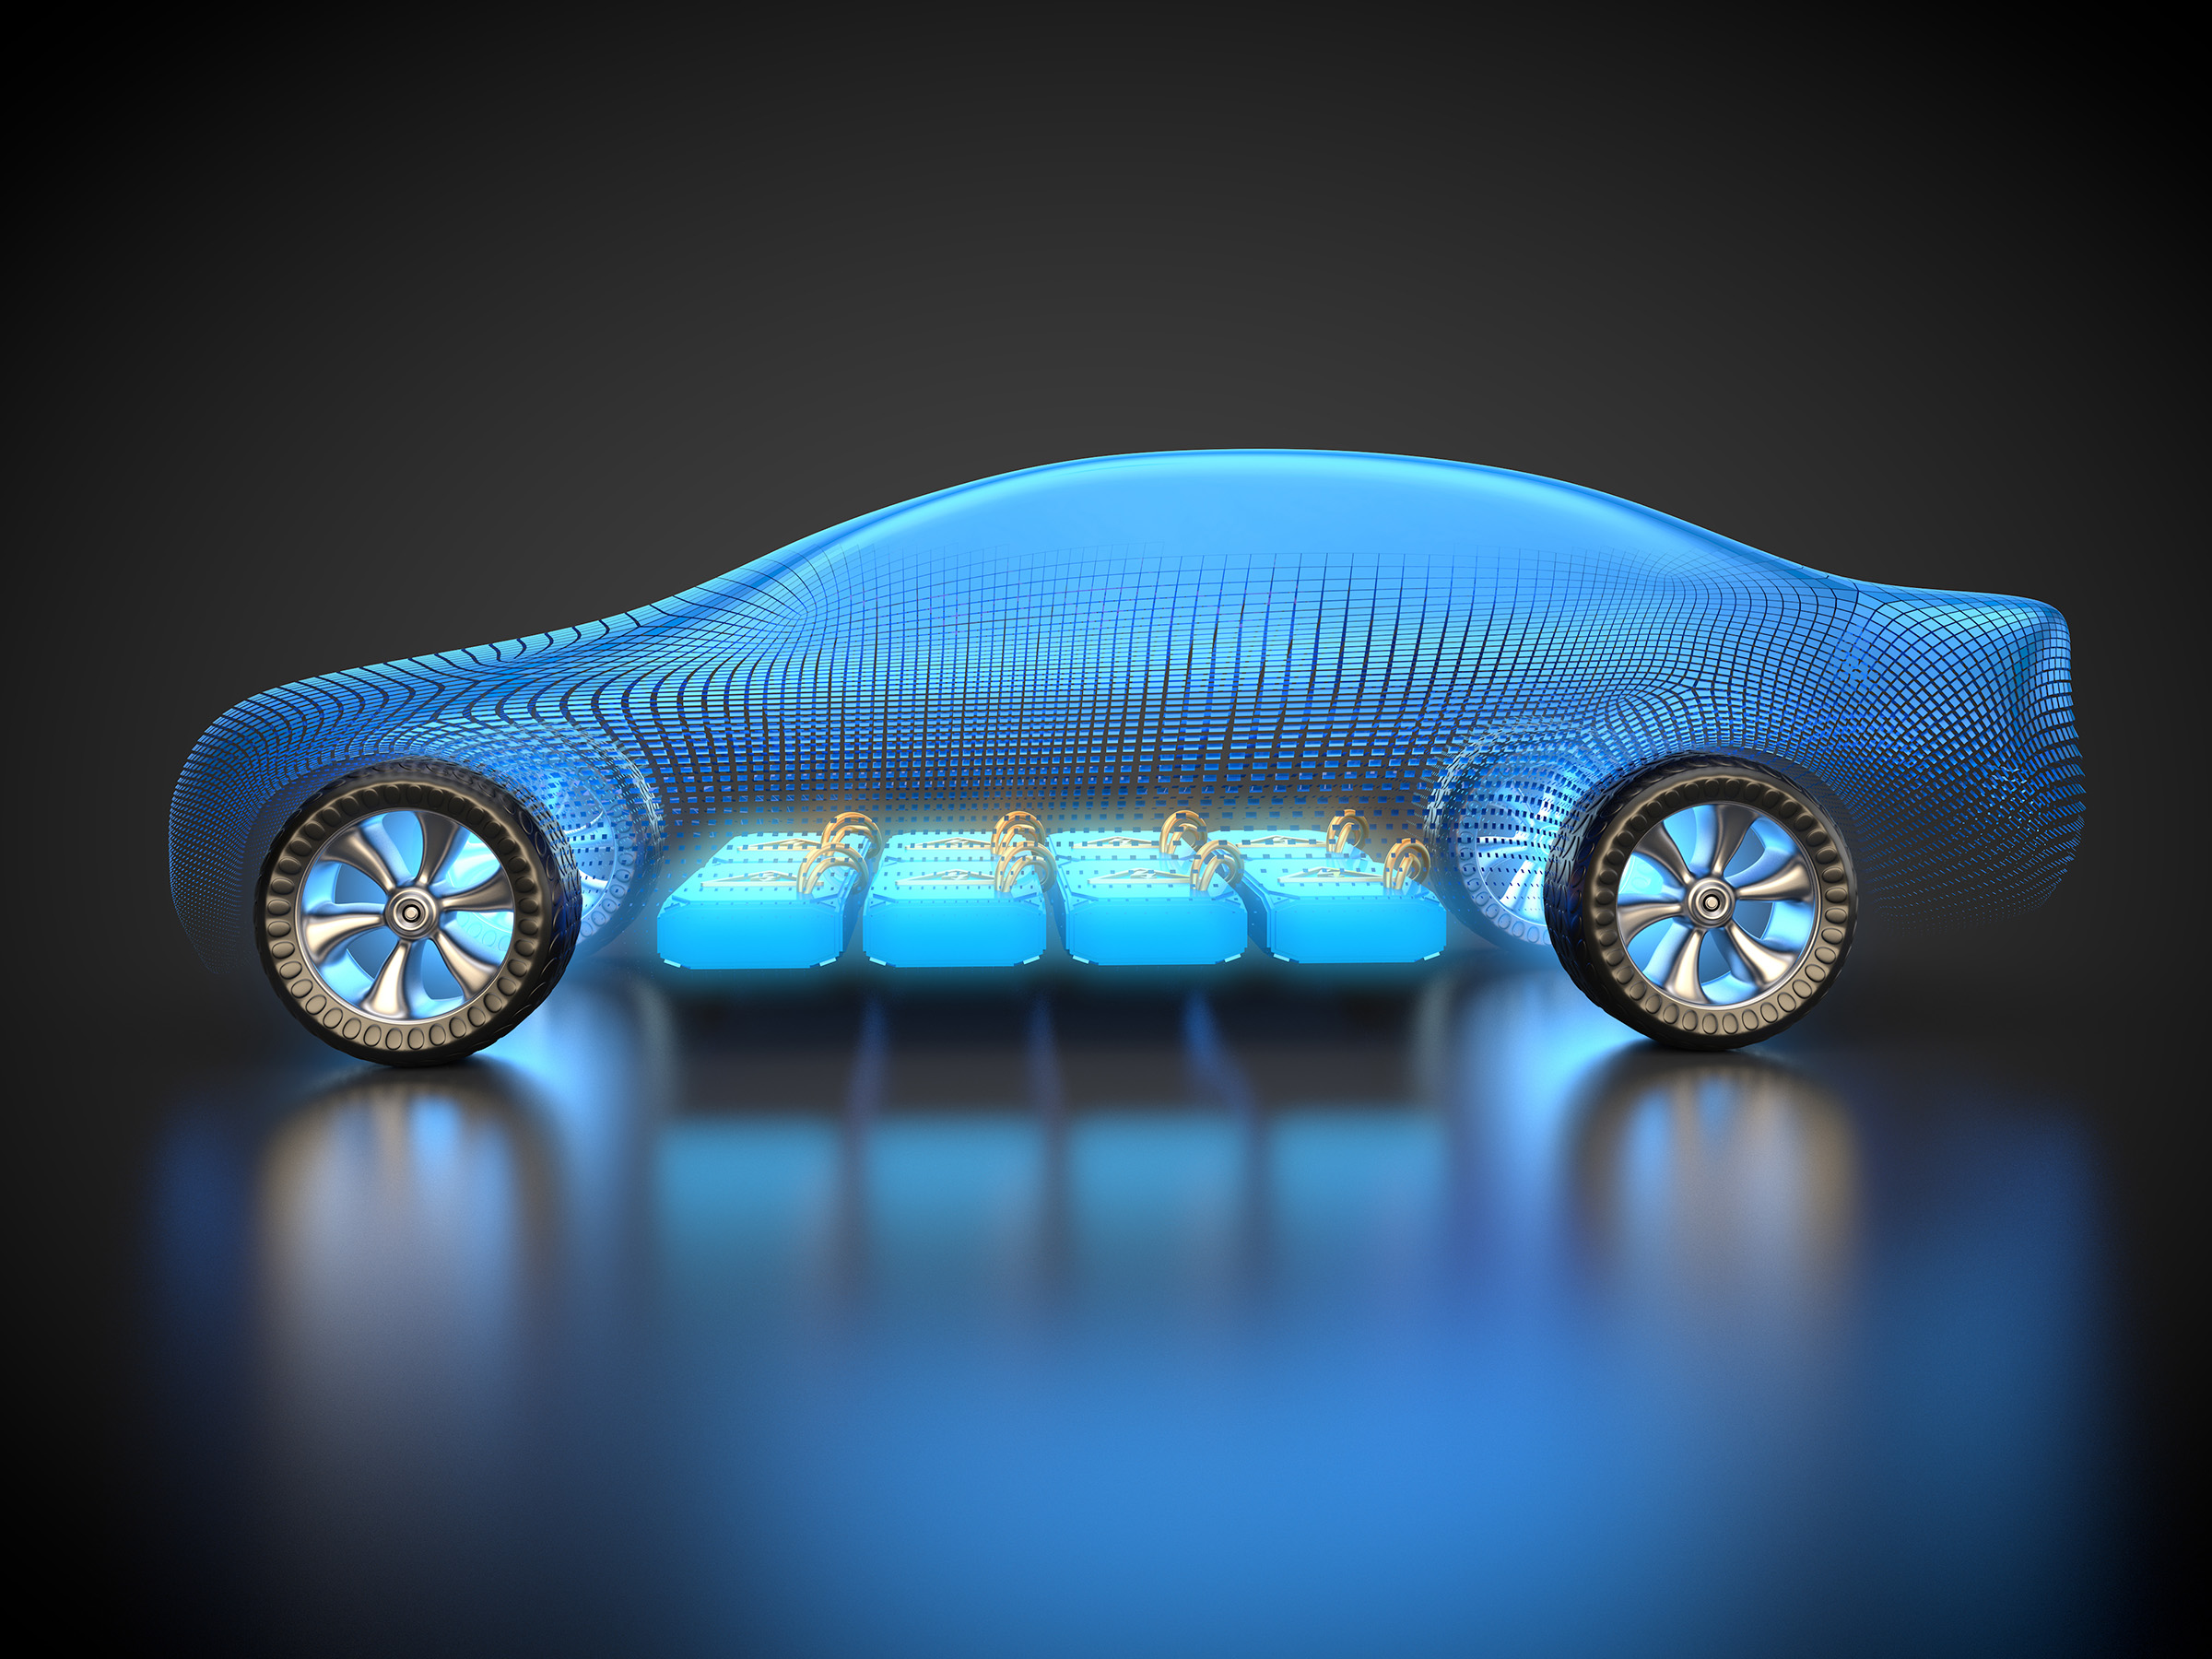 Electric vehicle battery conceptual view.